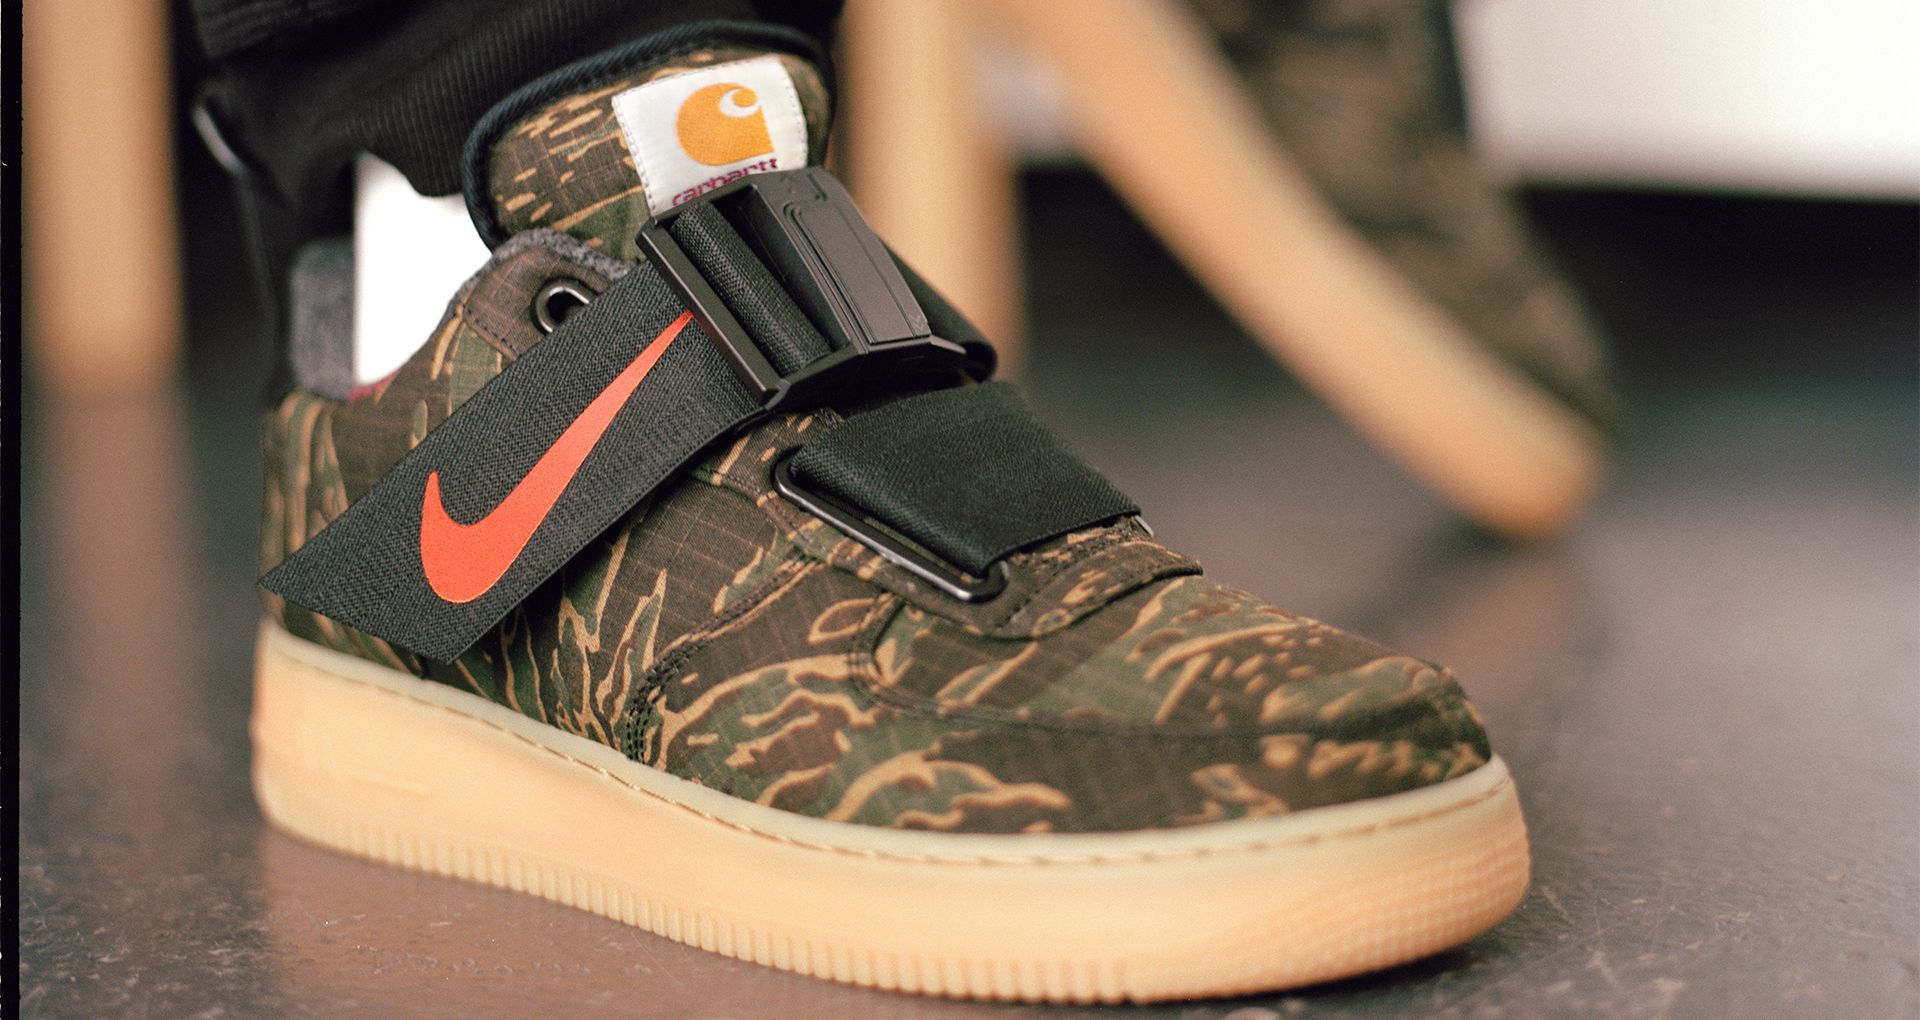 Air Force 1 Utility Low Premium Carhartt WIP 'Camo Green